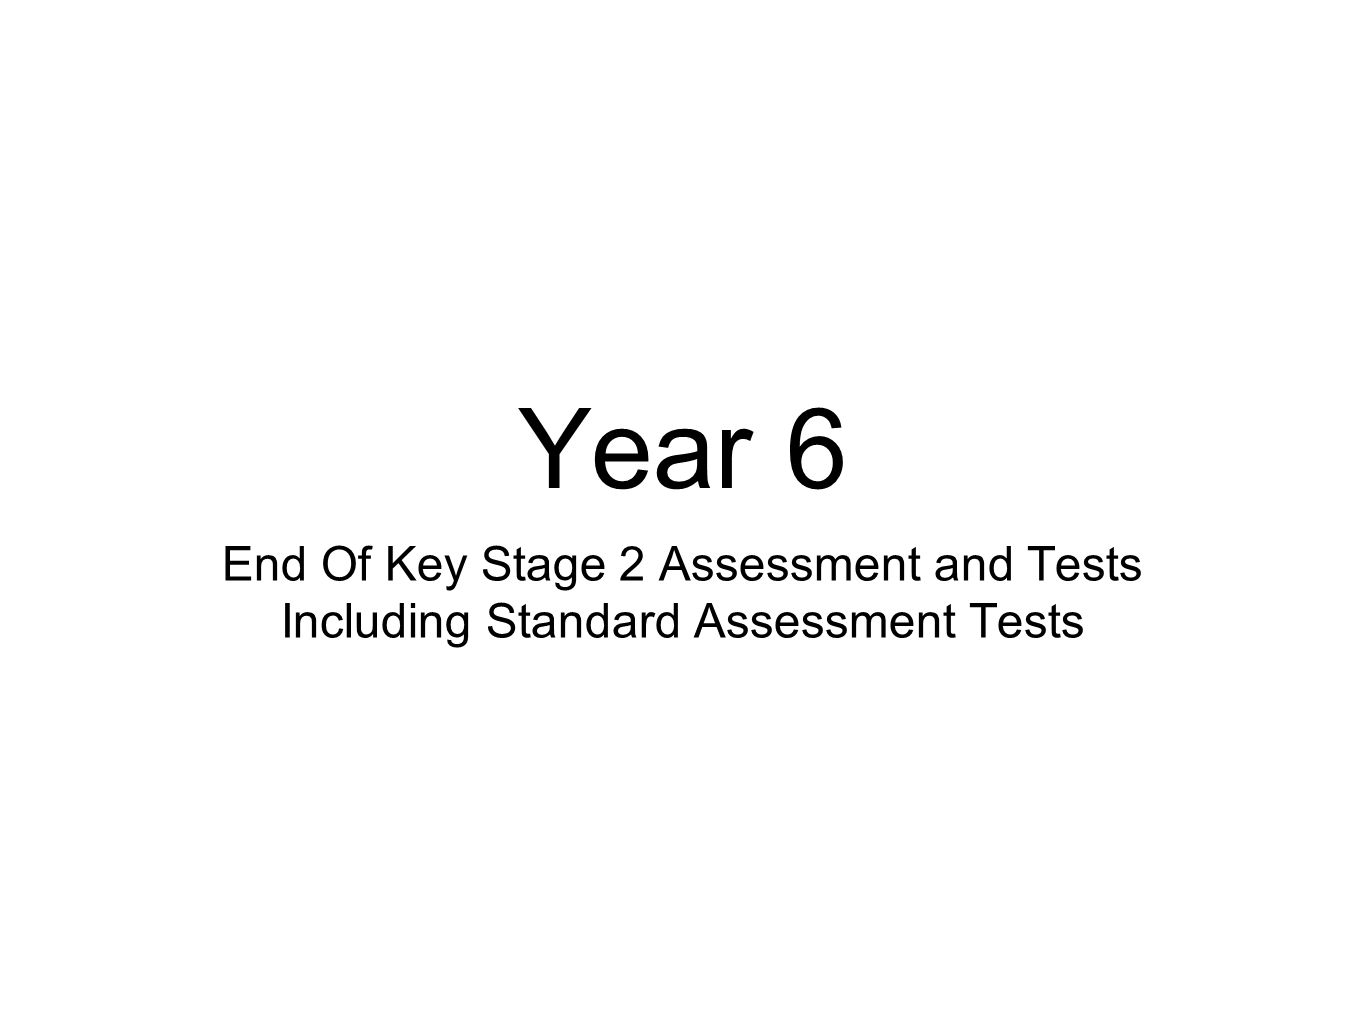 Year 6 End Of Key Stage 2 Assessment and Tests Including Standard Assessment Tests